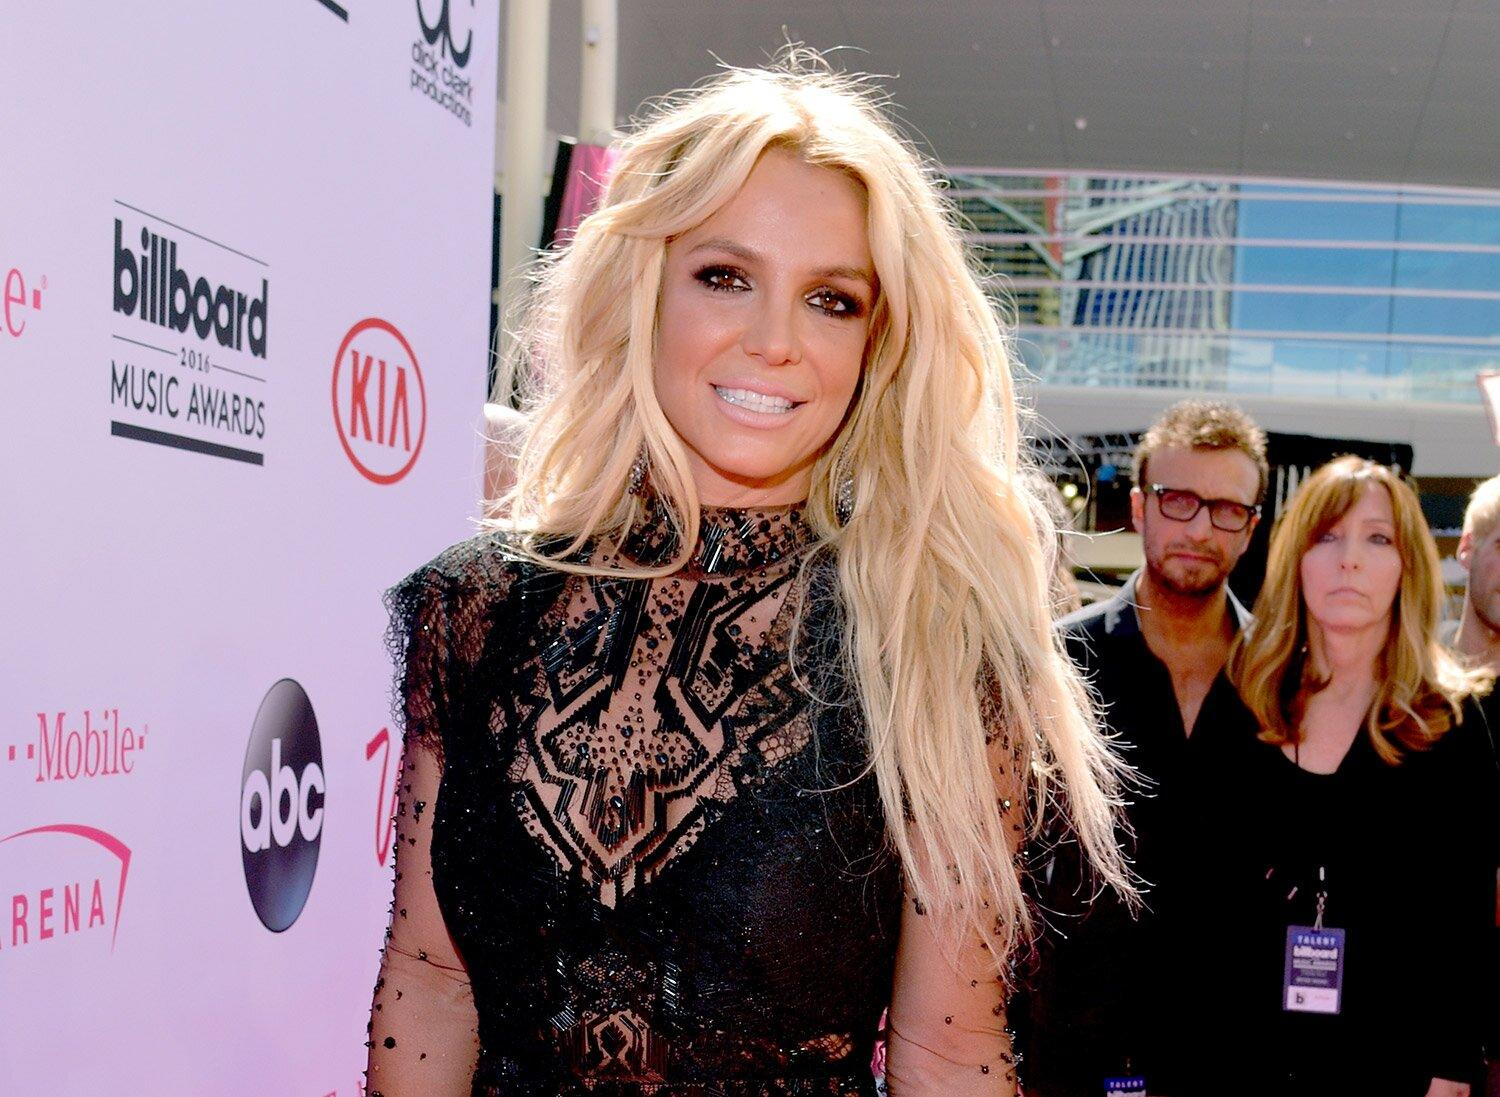 Britney Spears' Conservator Accuses Jamie Spears of Utilizing Over M of Singer's Funds to Defend Himself